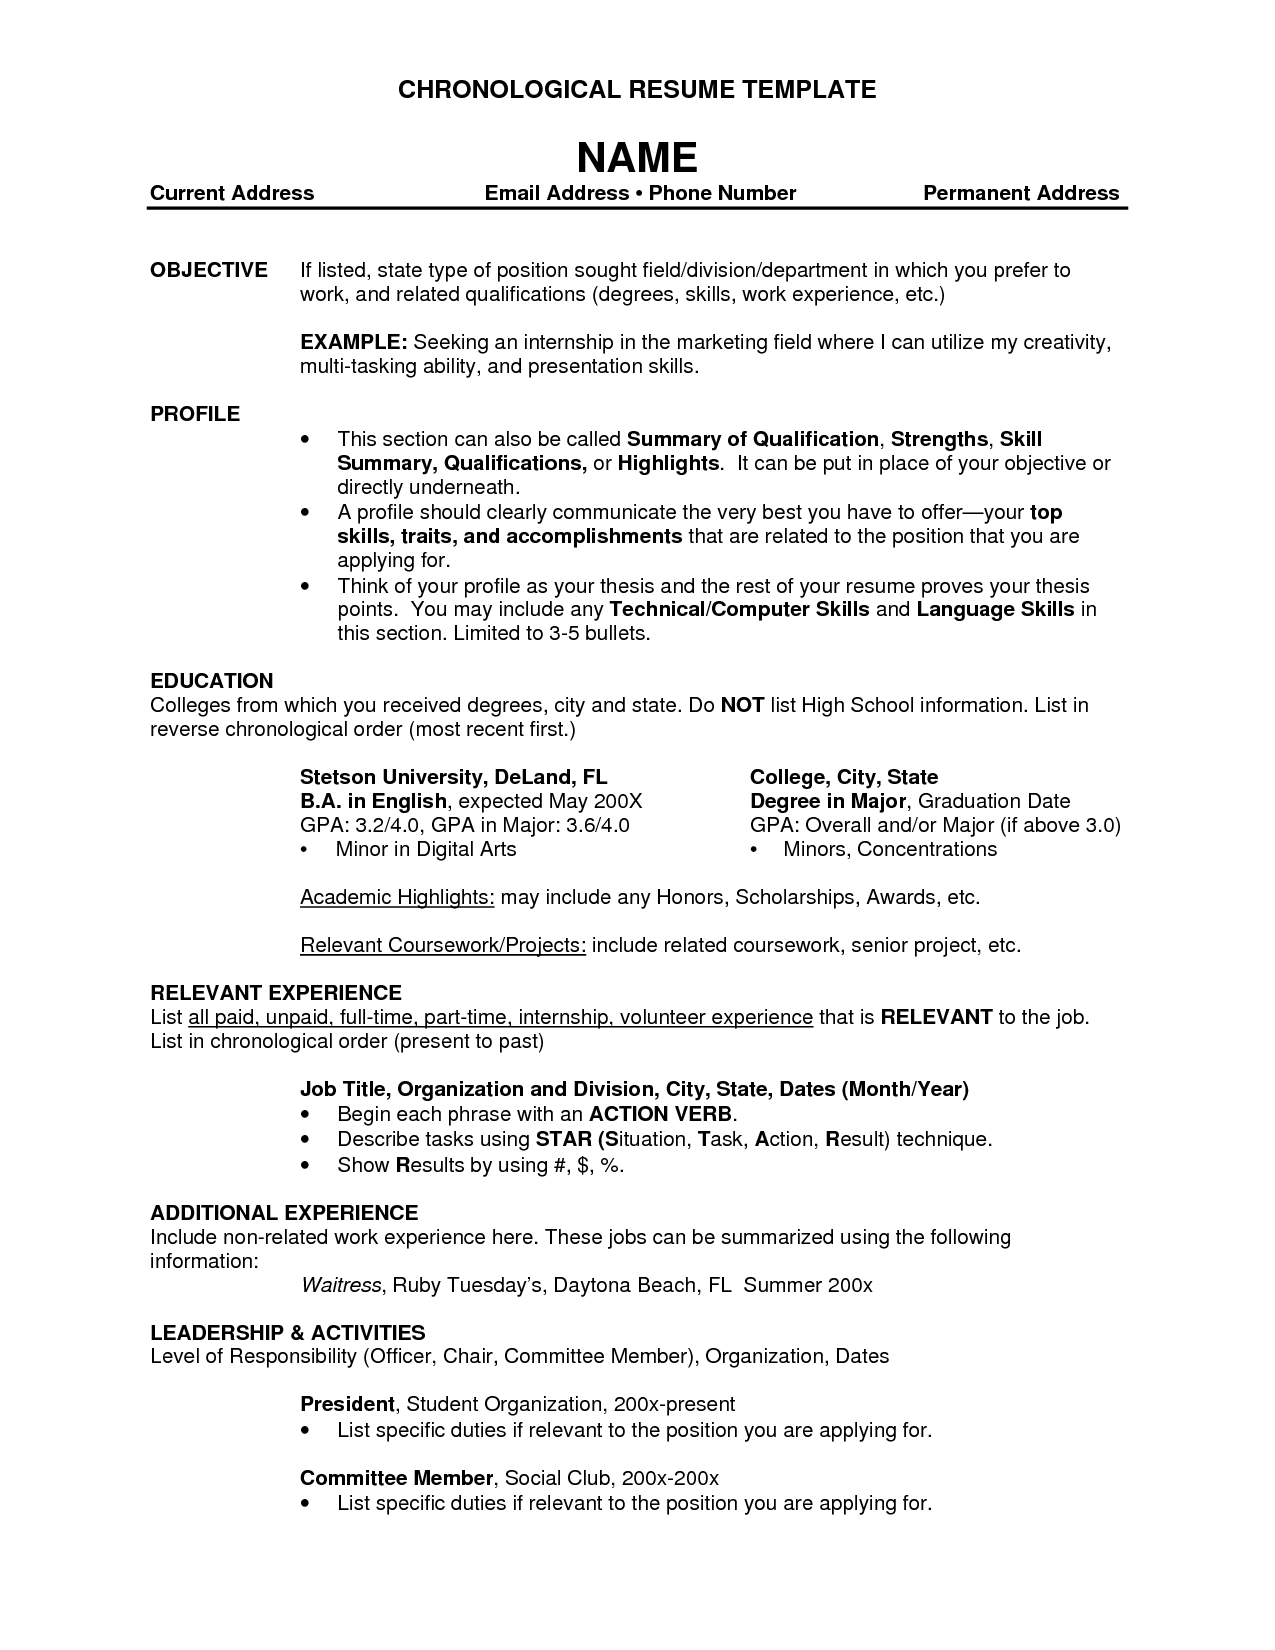 Standard Resume Format Template Blank Federal Government Jobs Job